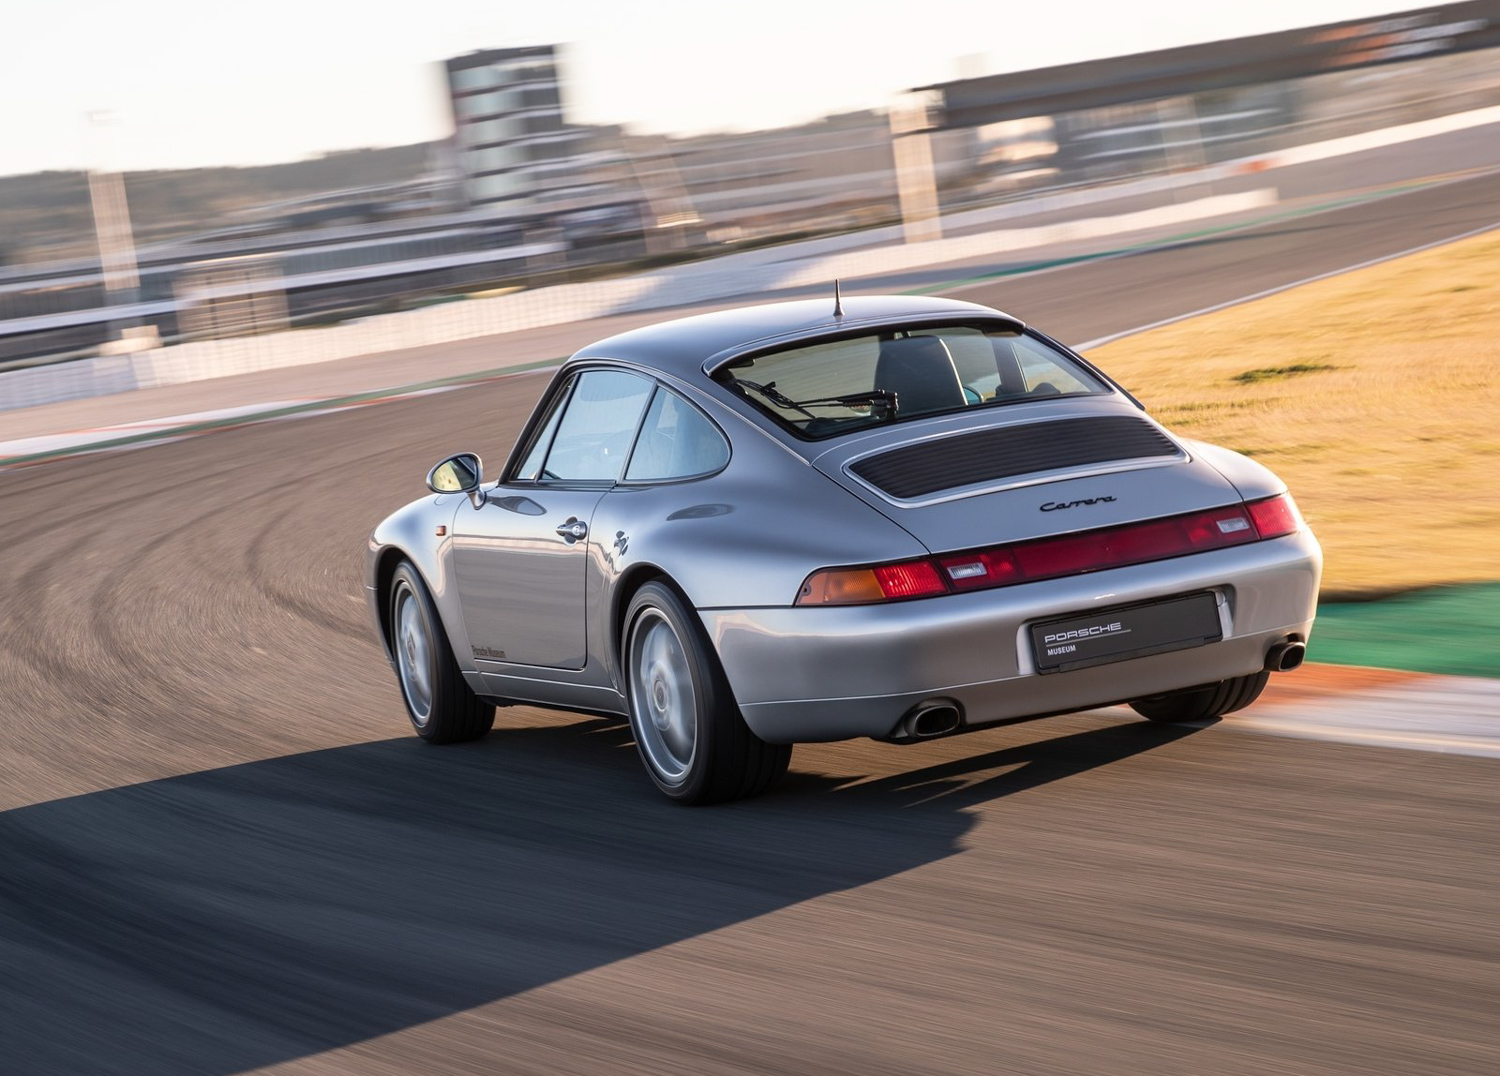 1997 Porsche 911 Carrera 3/4 rear on track